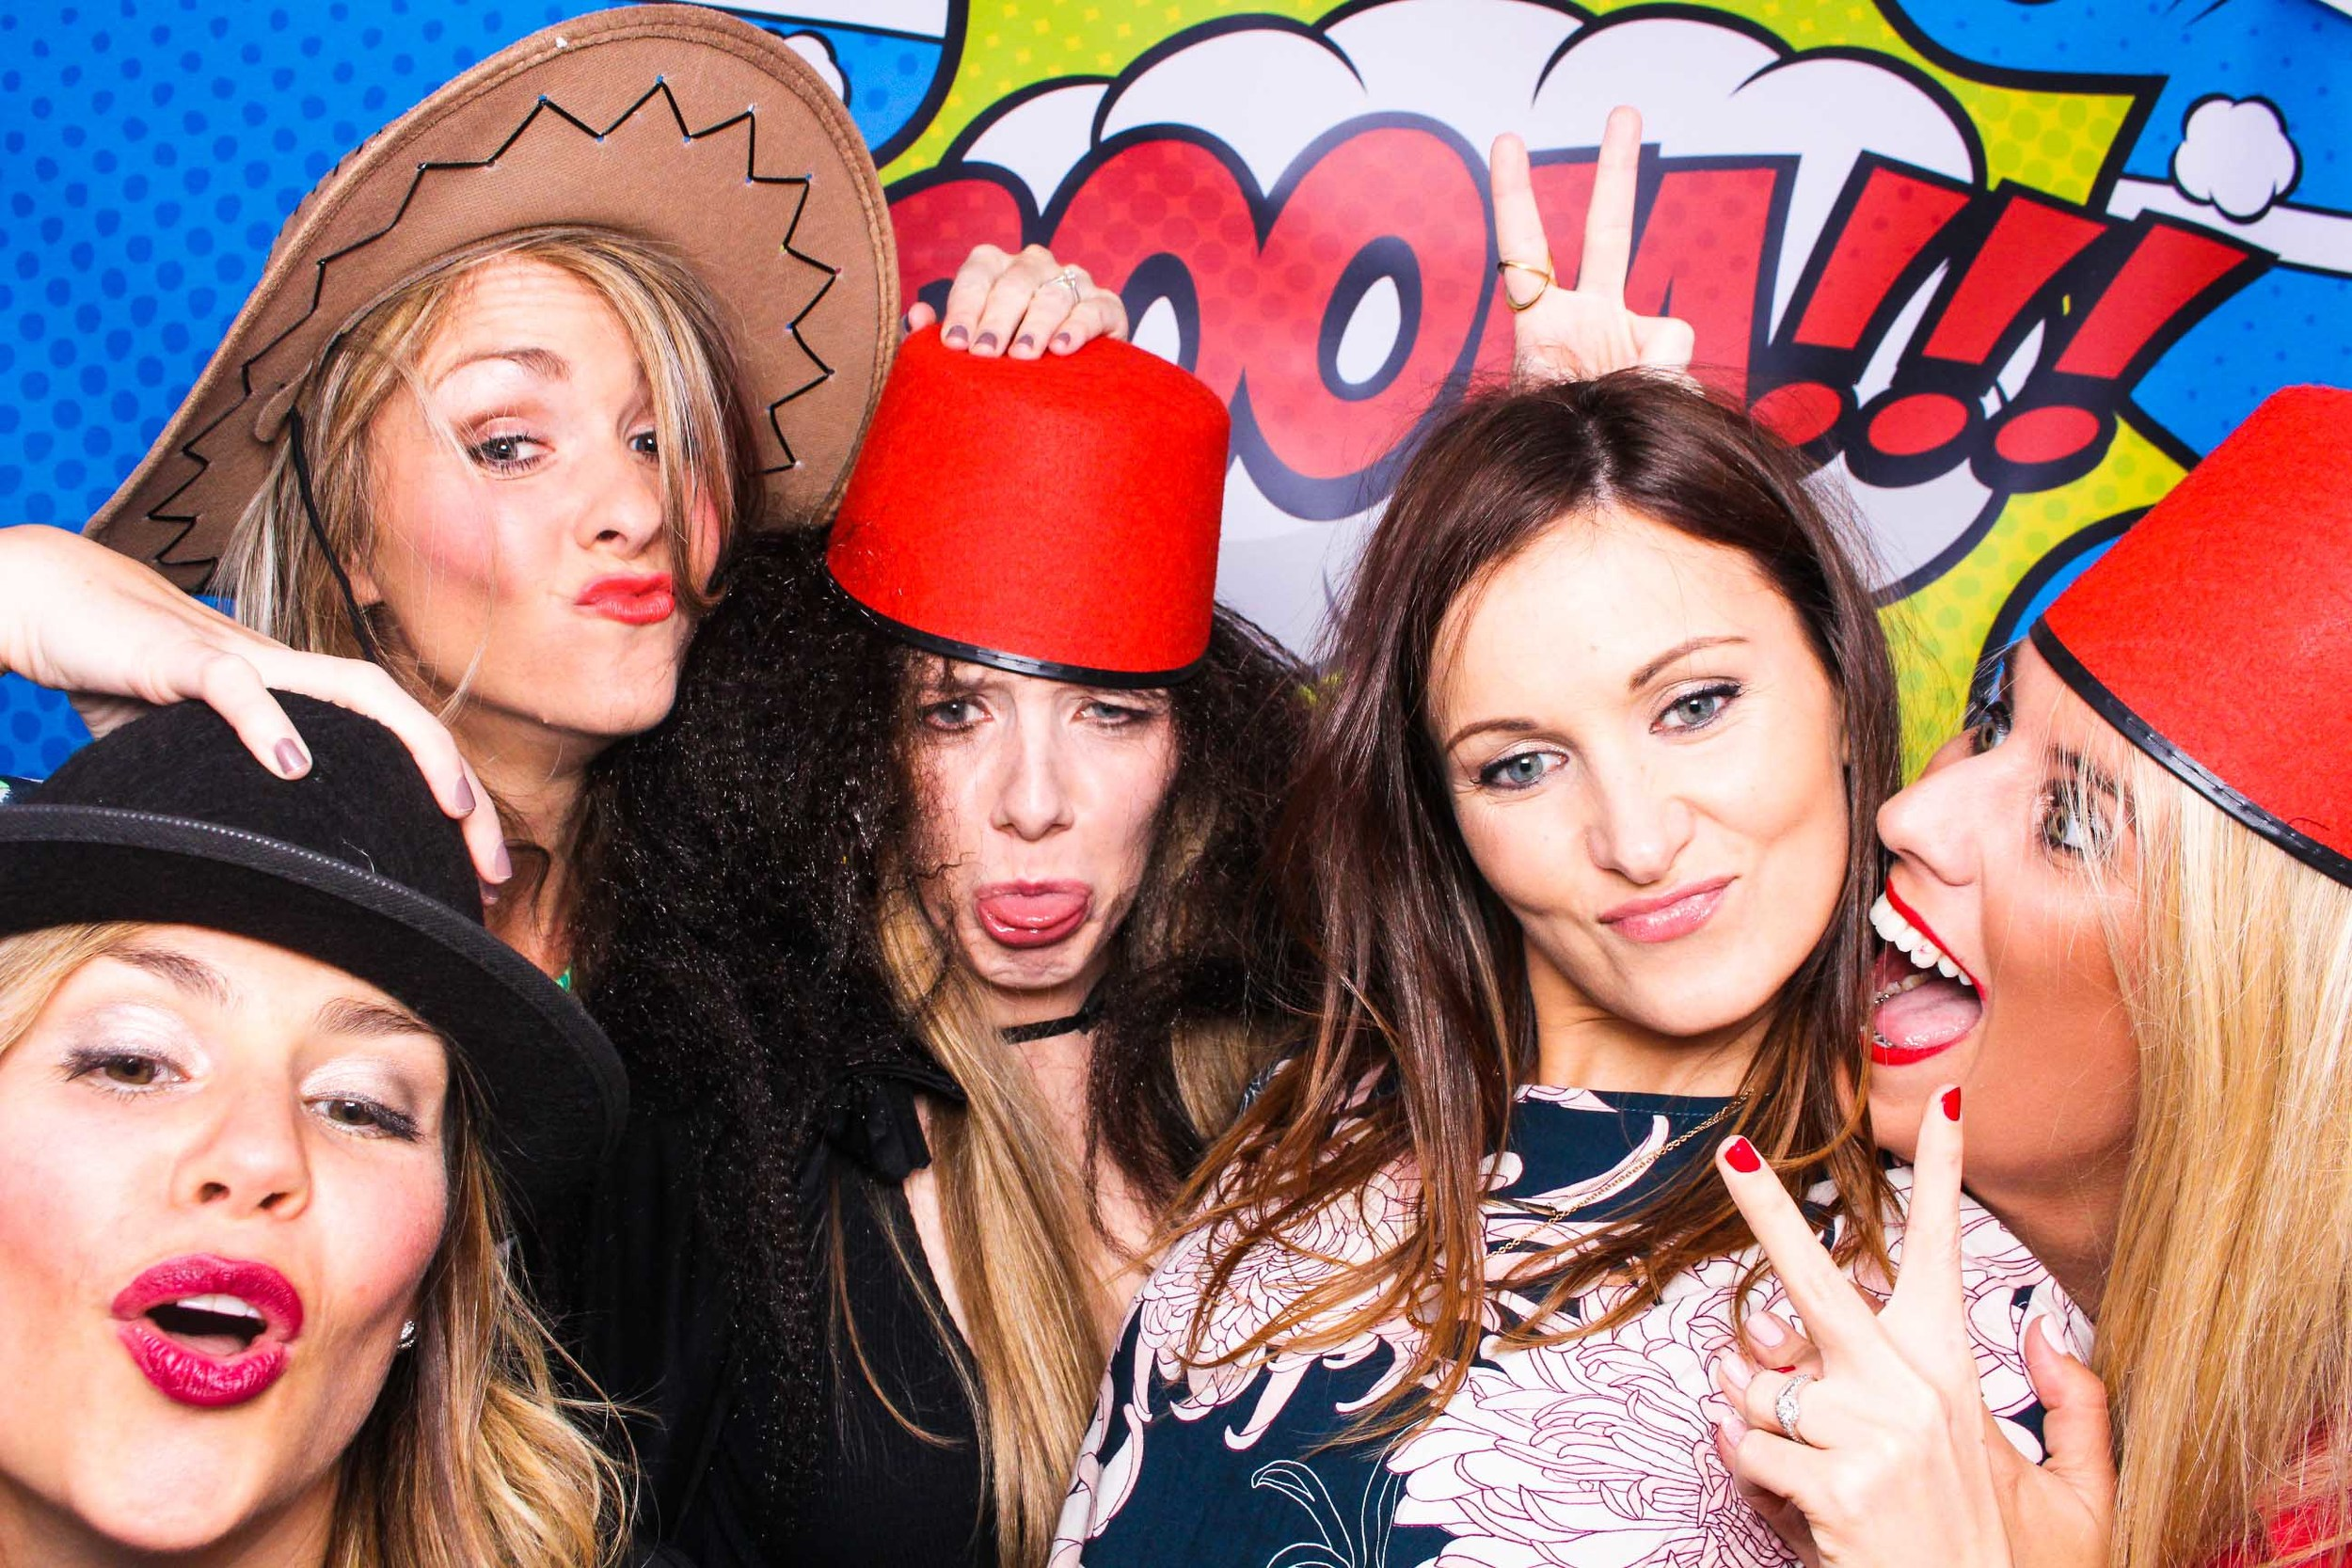 Fotoauto Photo Booth Hire - Shop Direct-153.jpg